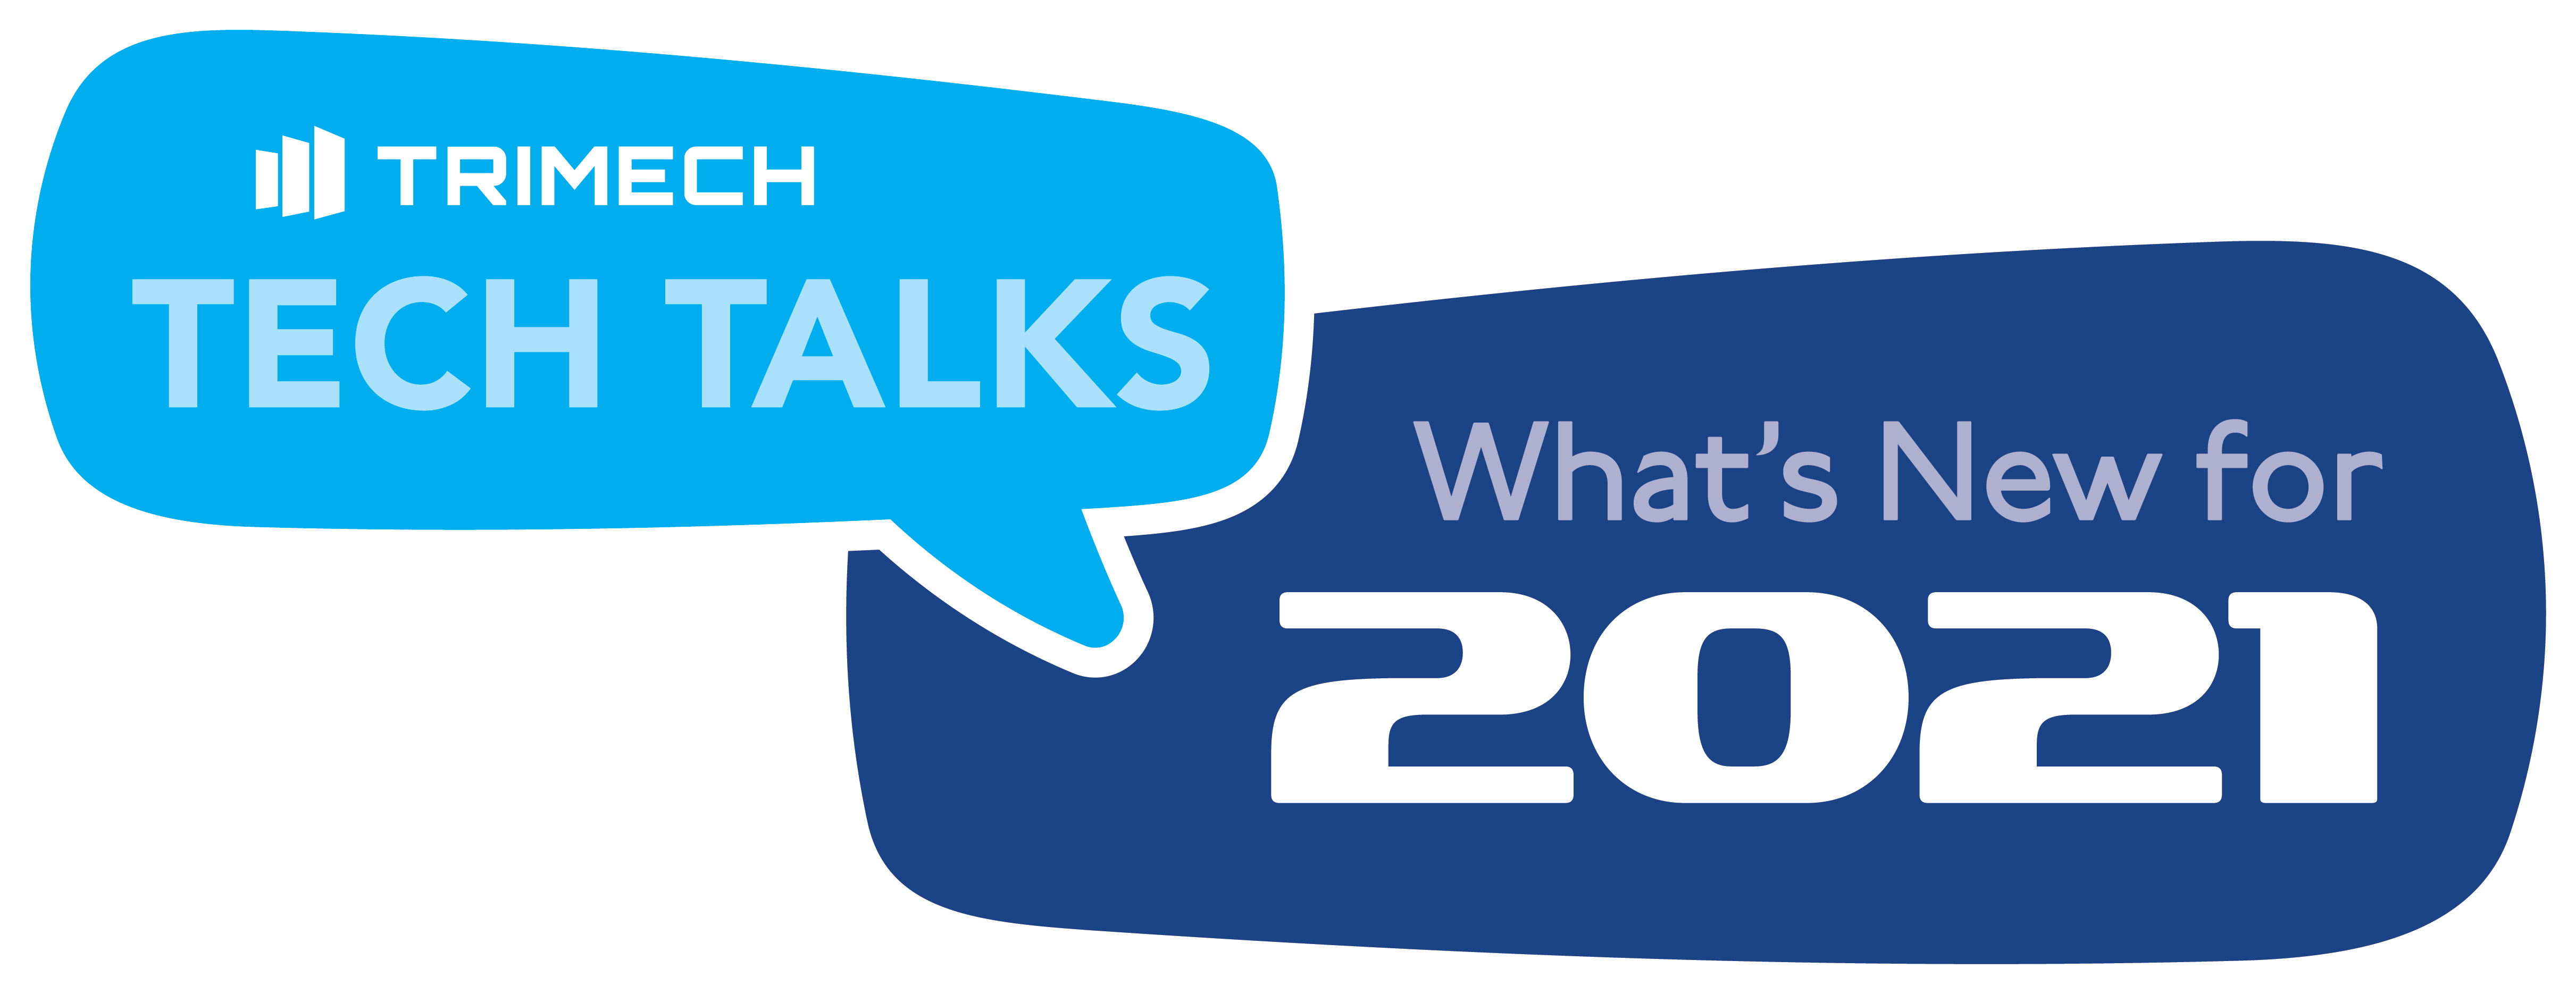 TriMech Tech Talks - What's New in 2021